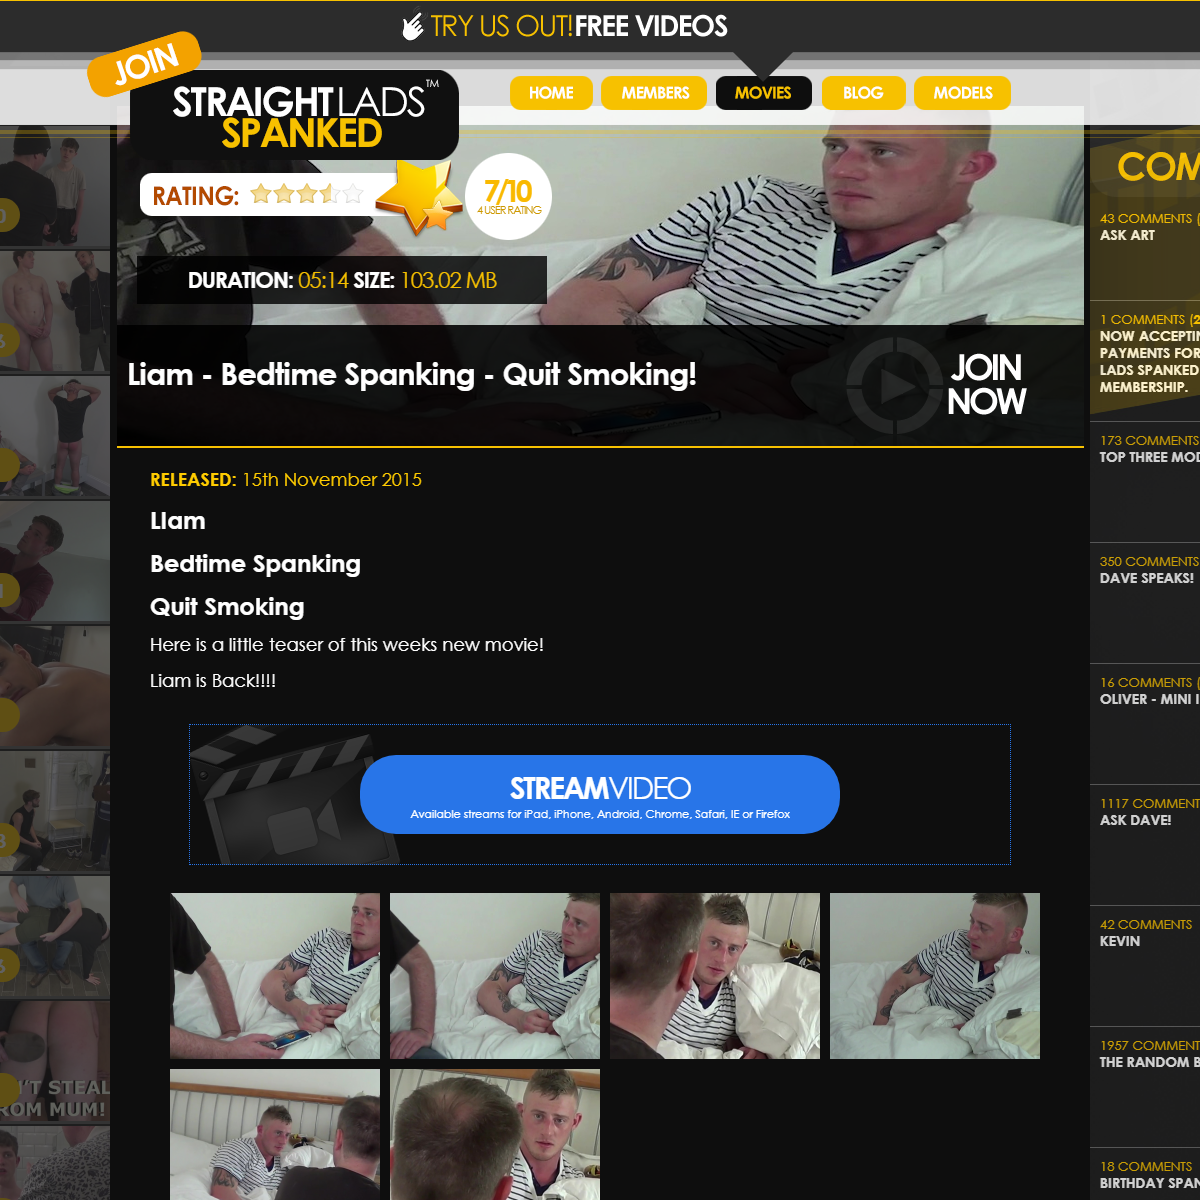 Liam - Bedtime Spanking - Quit Smoking! - Straight Lads Spanked